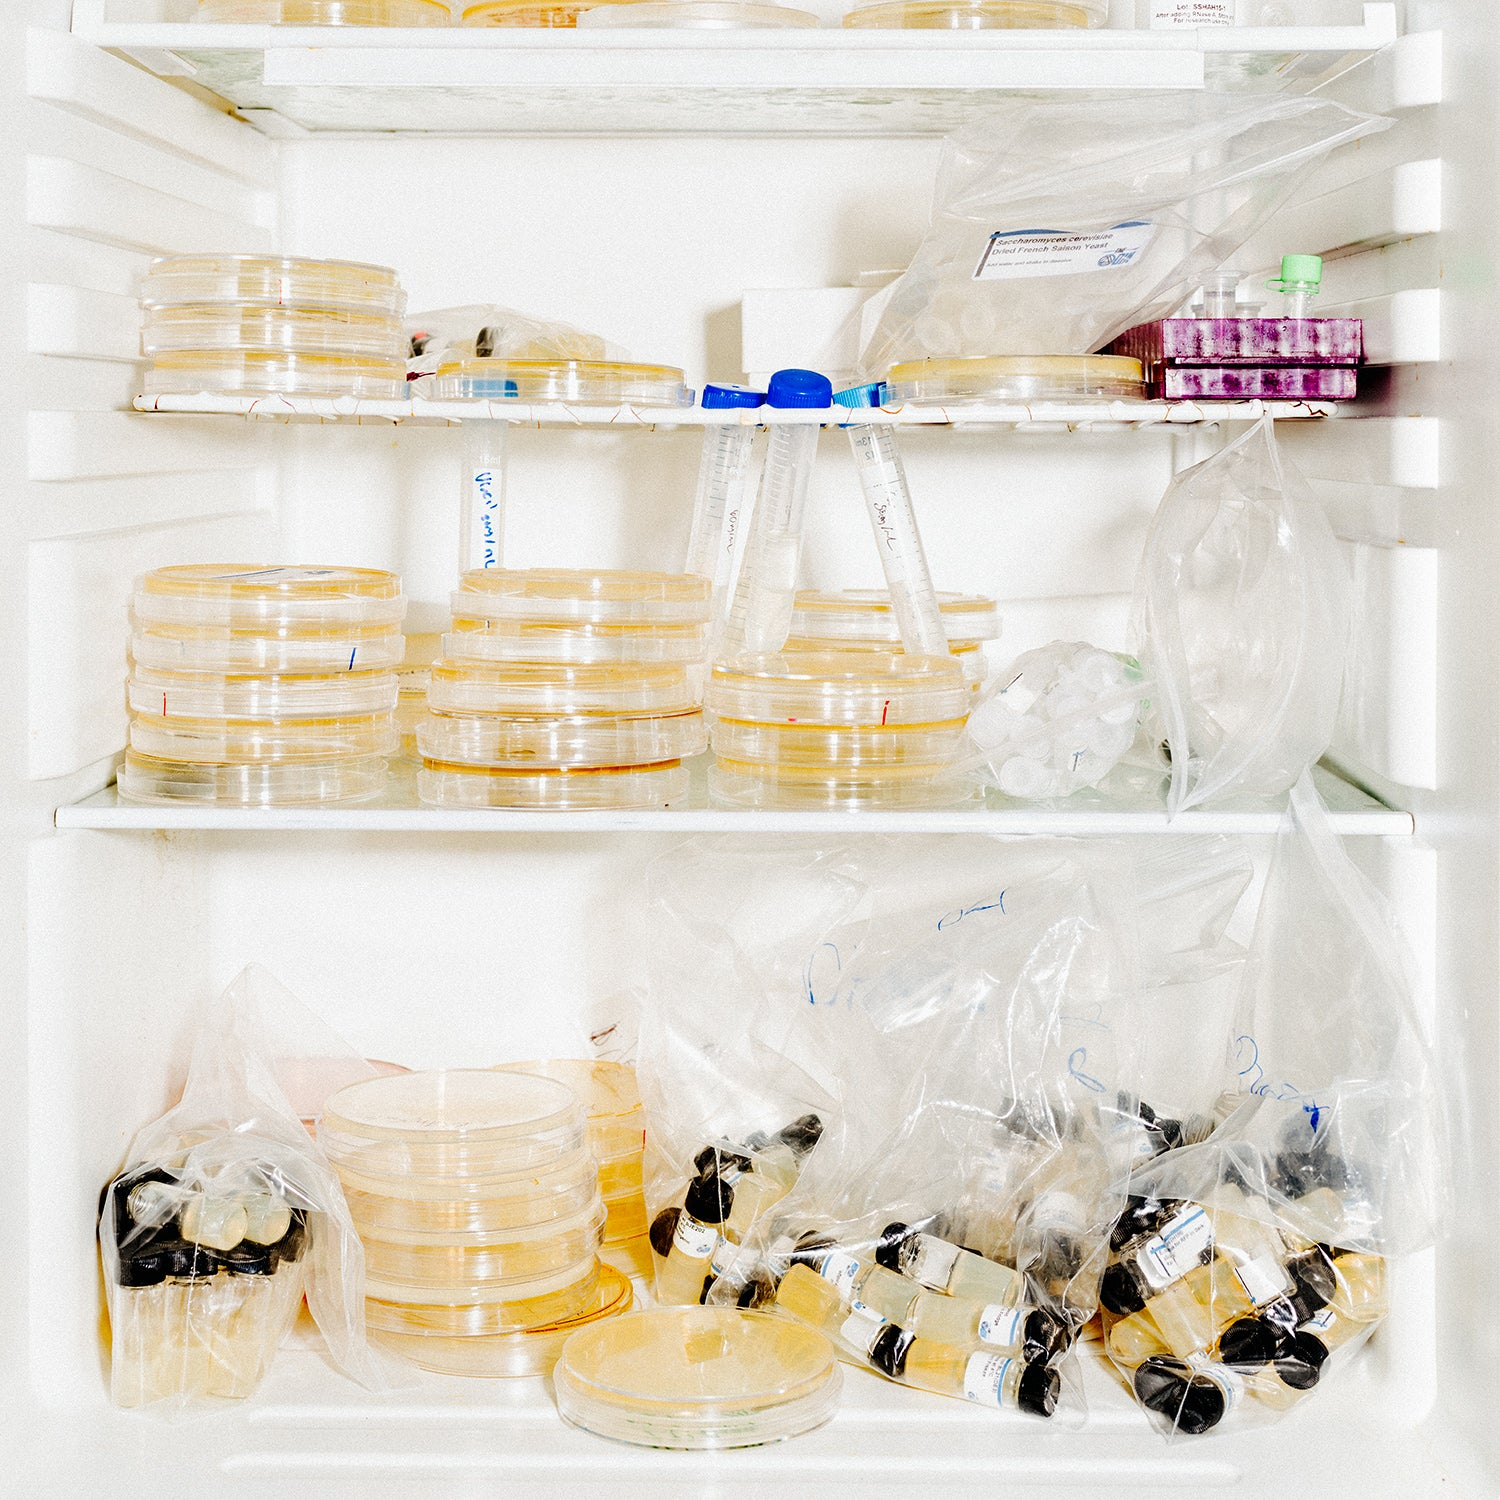 Agar plates and vials of microbes at the ODIN lab.